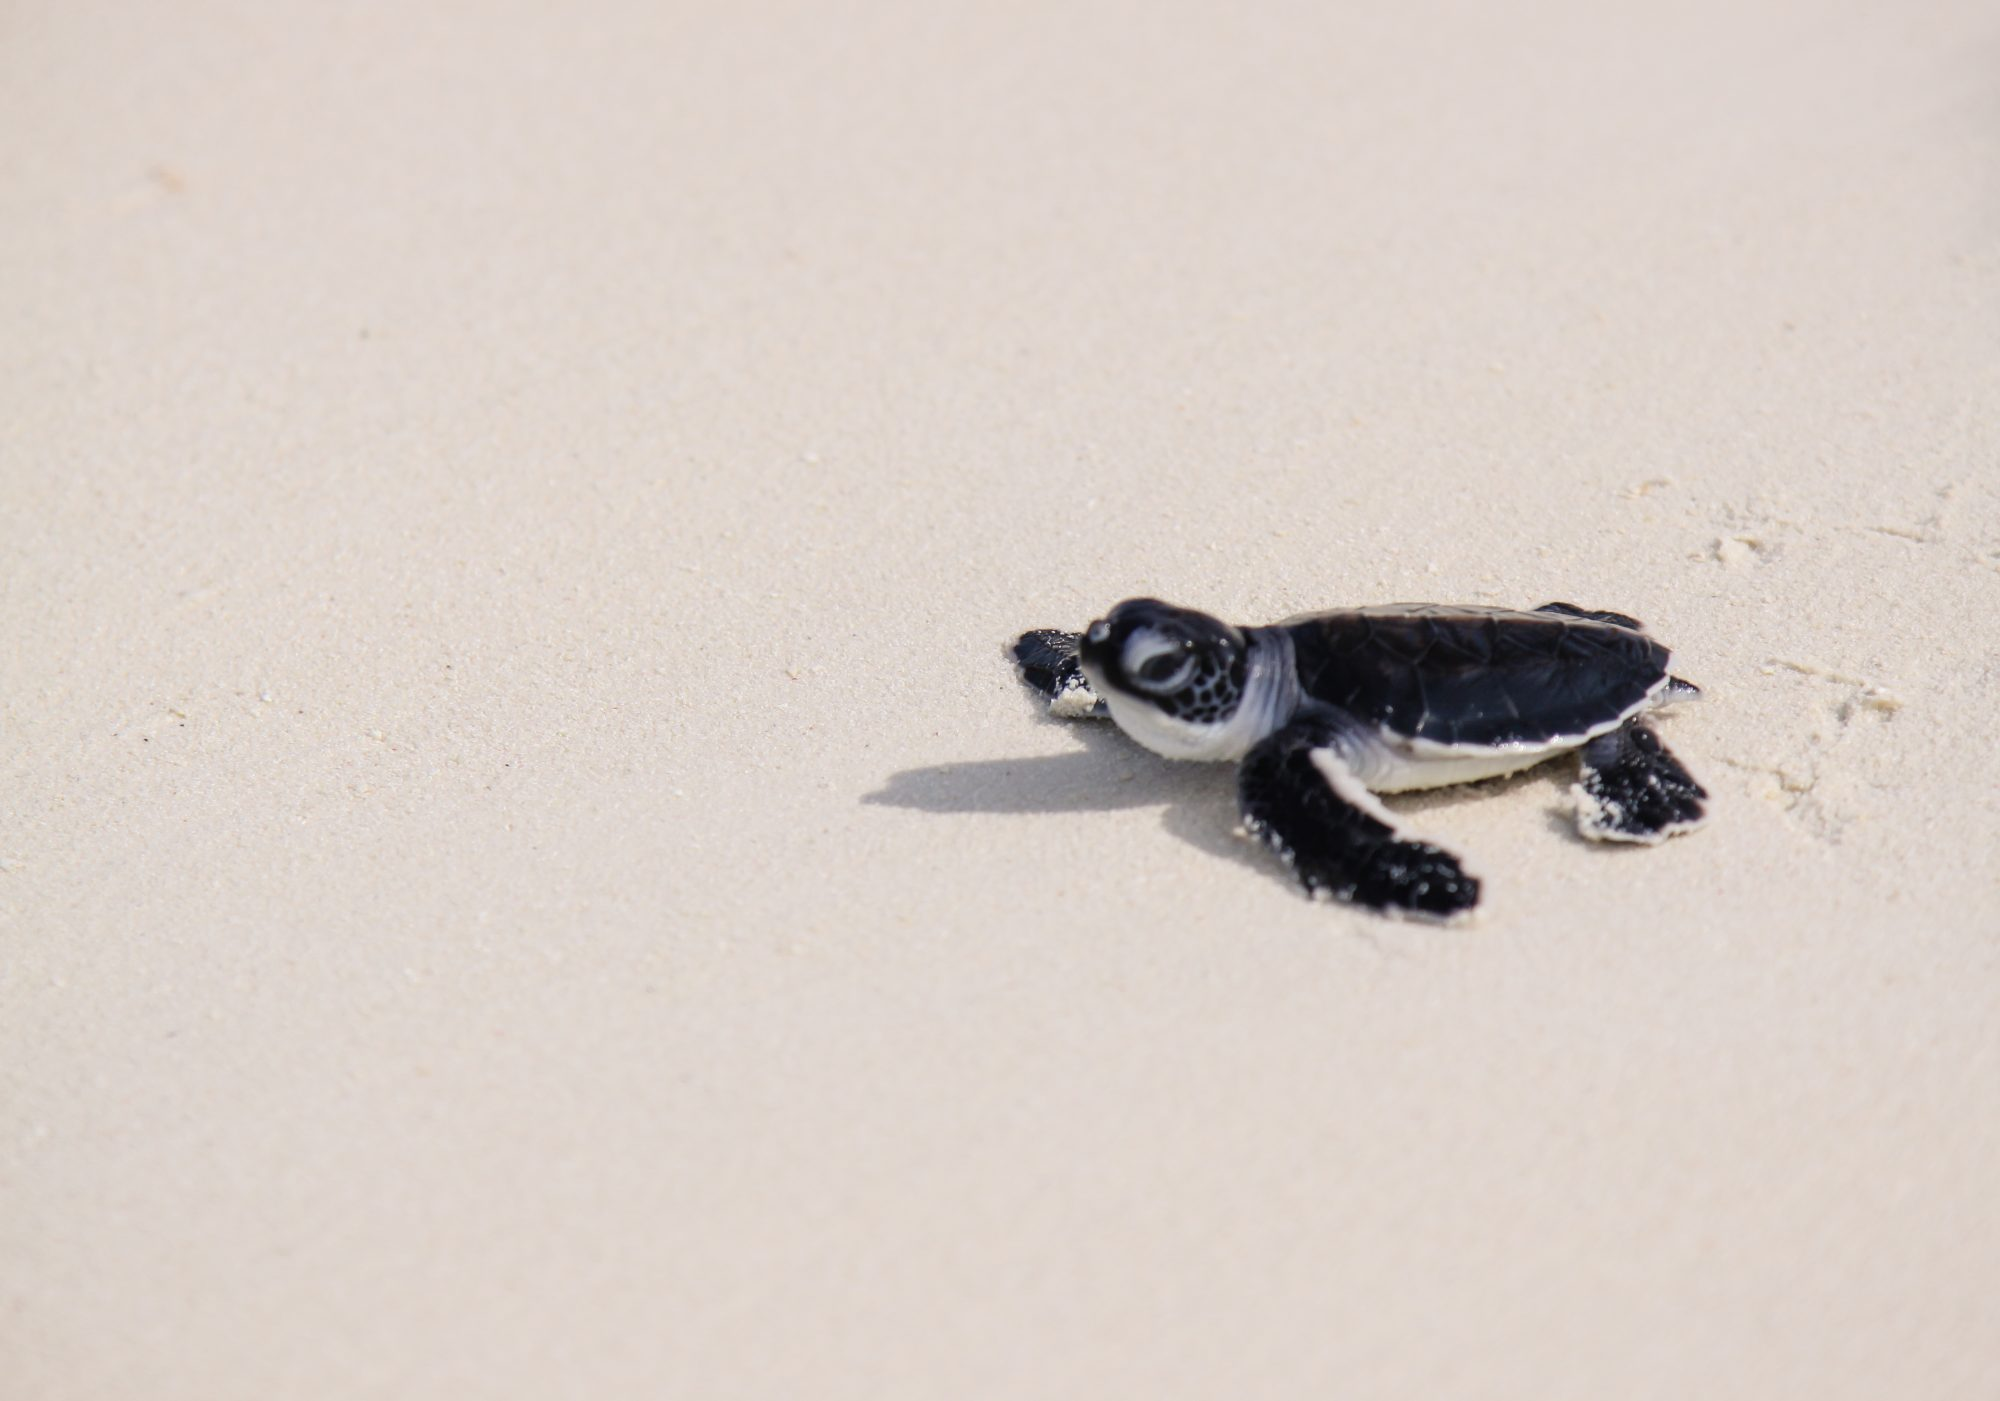 Baby Leatherback Sea Turtle